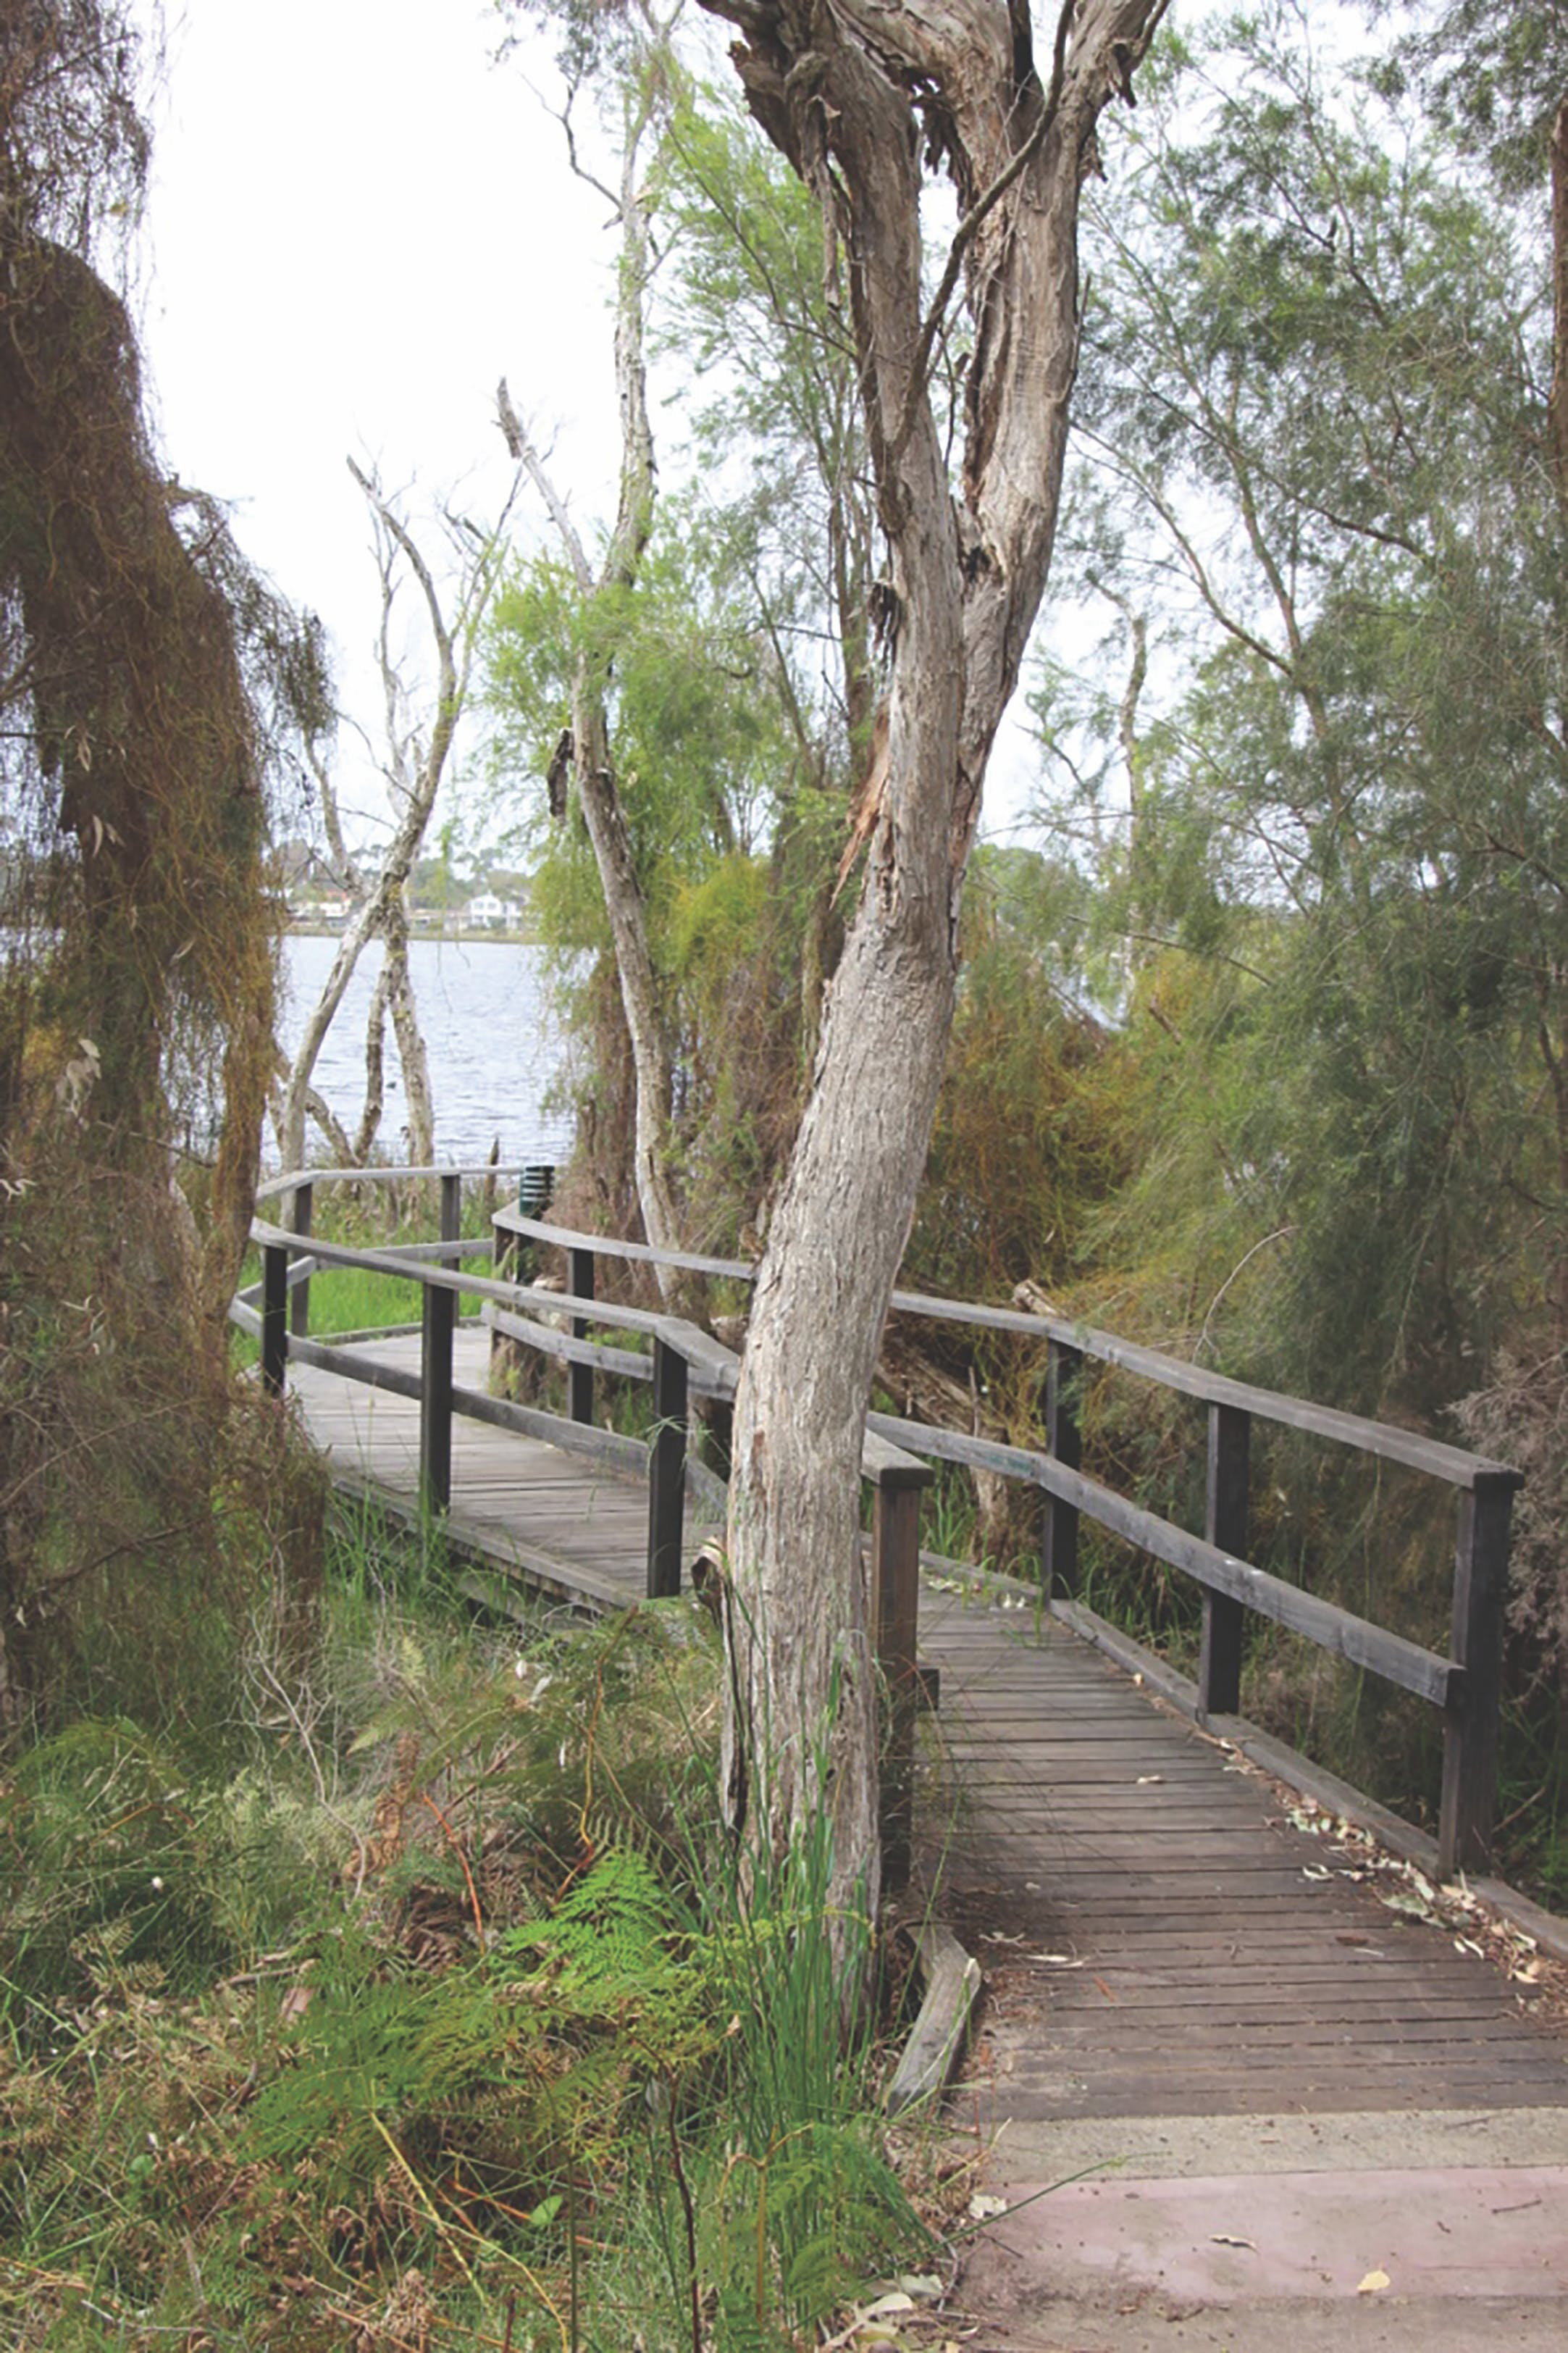 Clontarf boardwalk